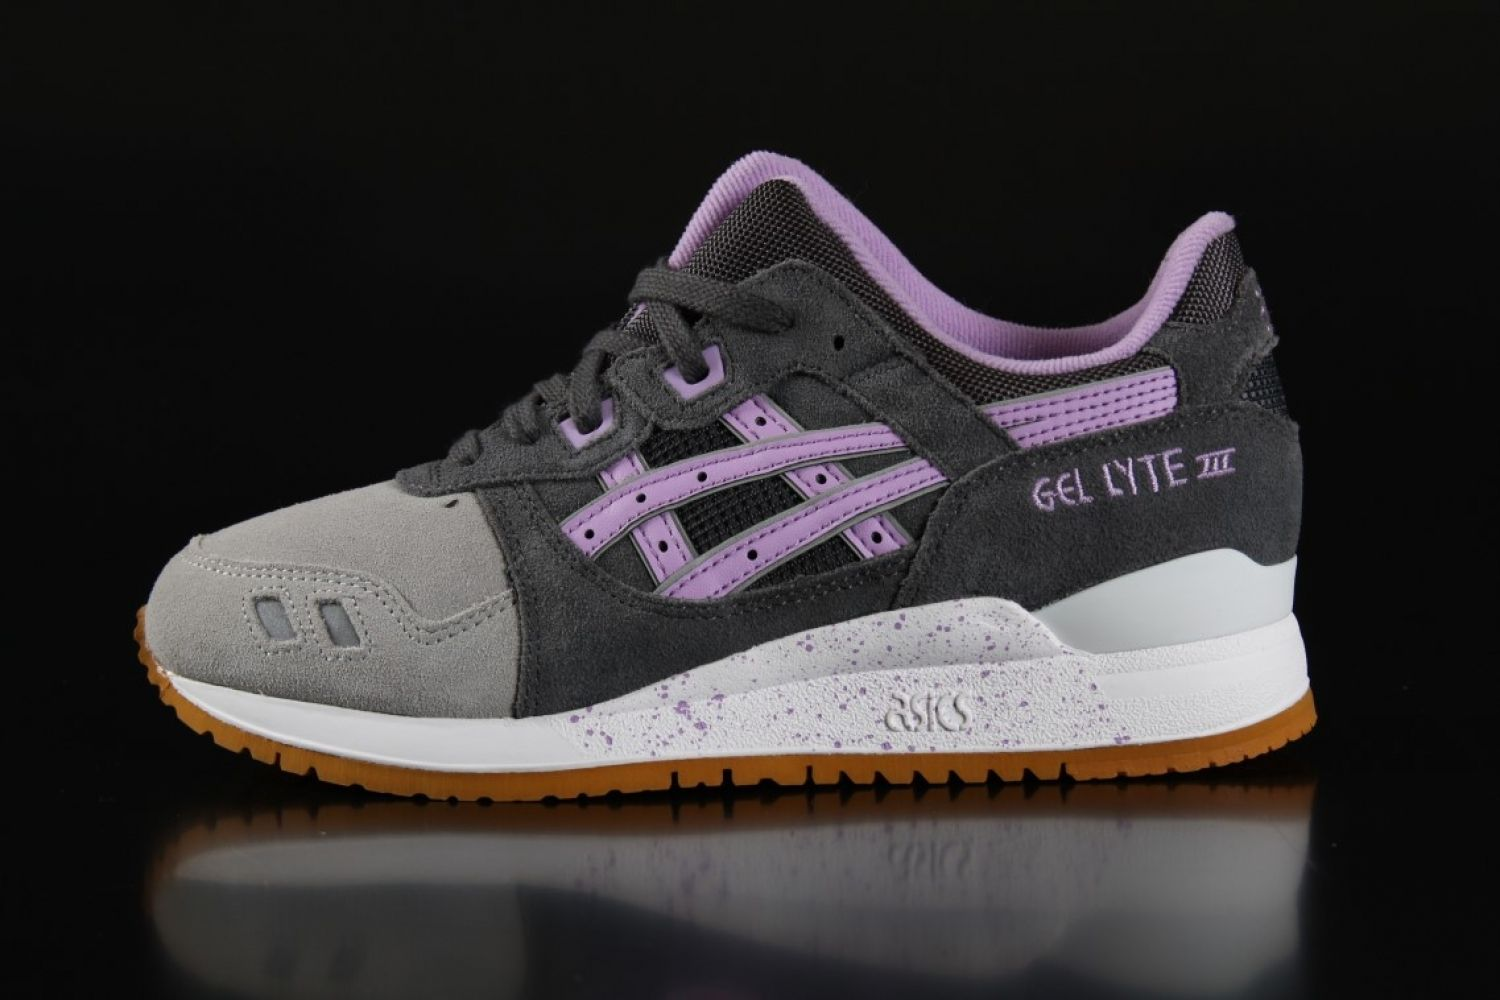 Asics - Asics Gel-Lyte III Wmns Sneaker Easter Collection Dark Grey Sheer  Lilac H572L